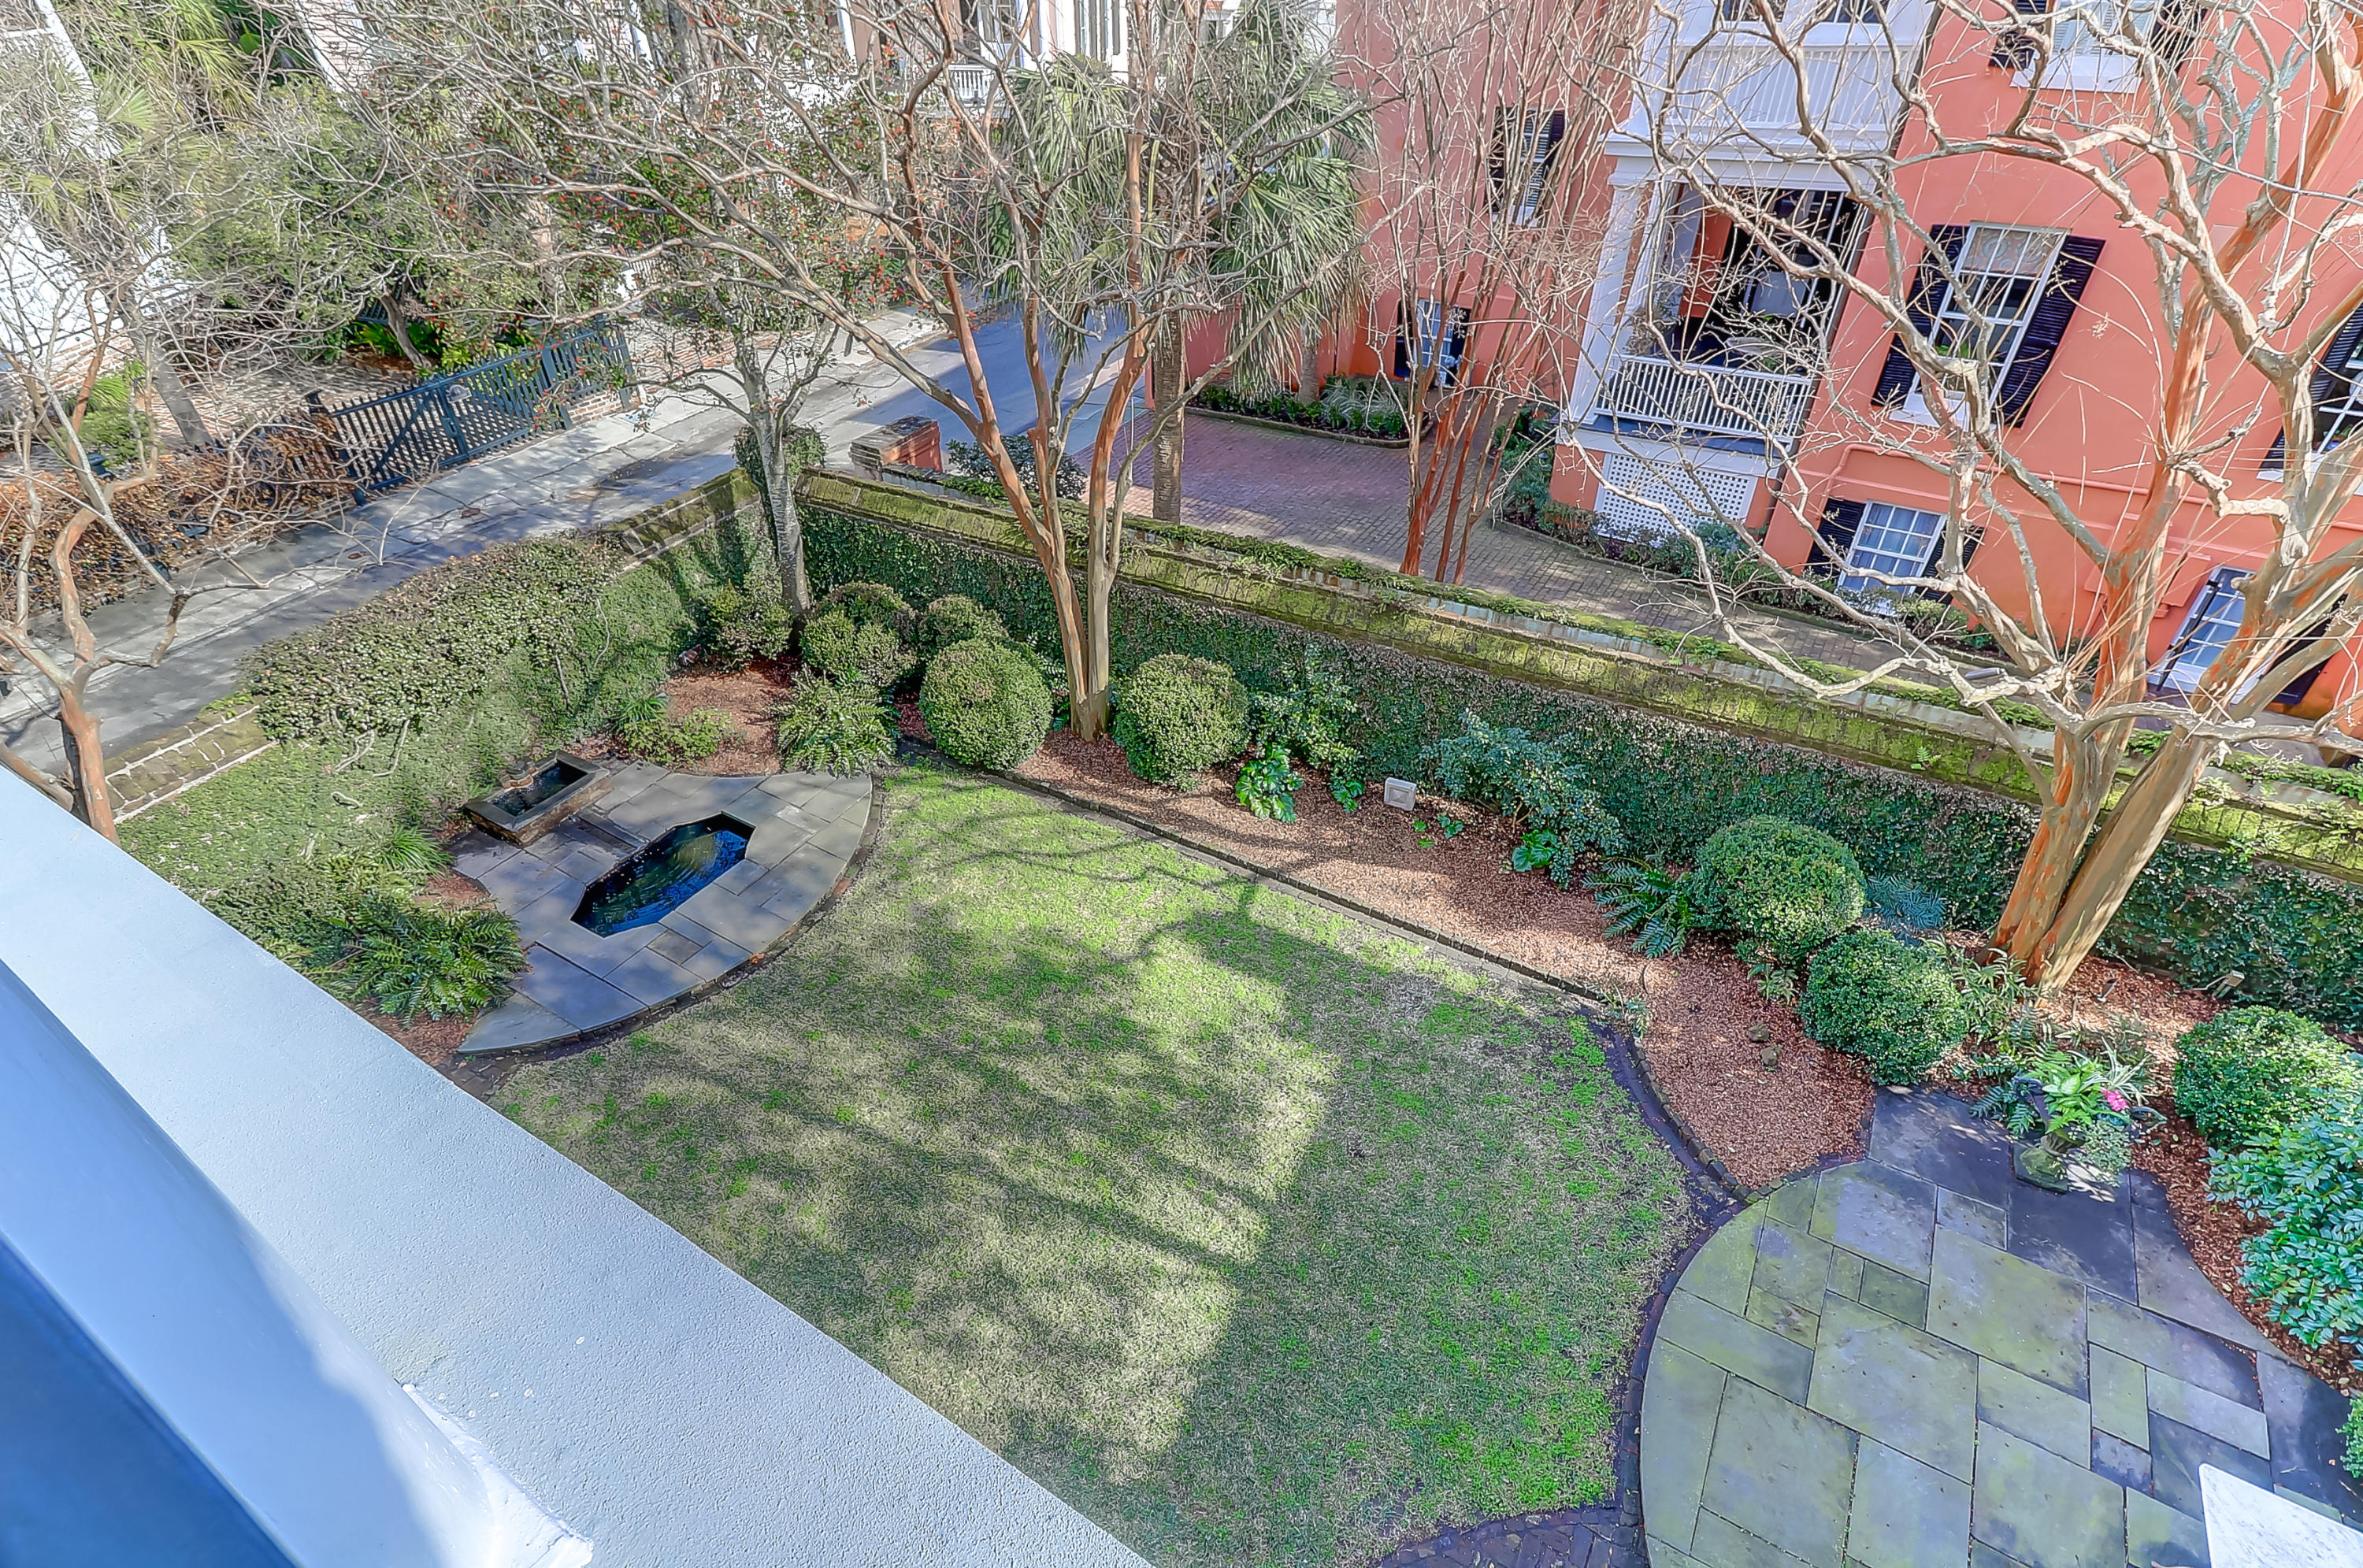 Photo of 11 Water St, Charleston, SC 29401